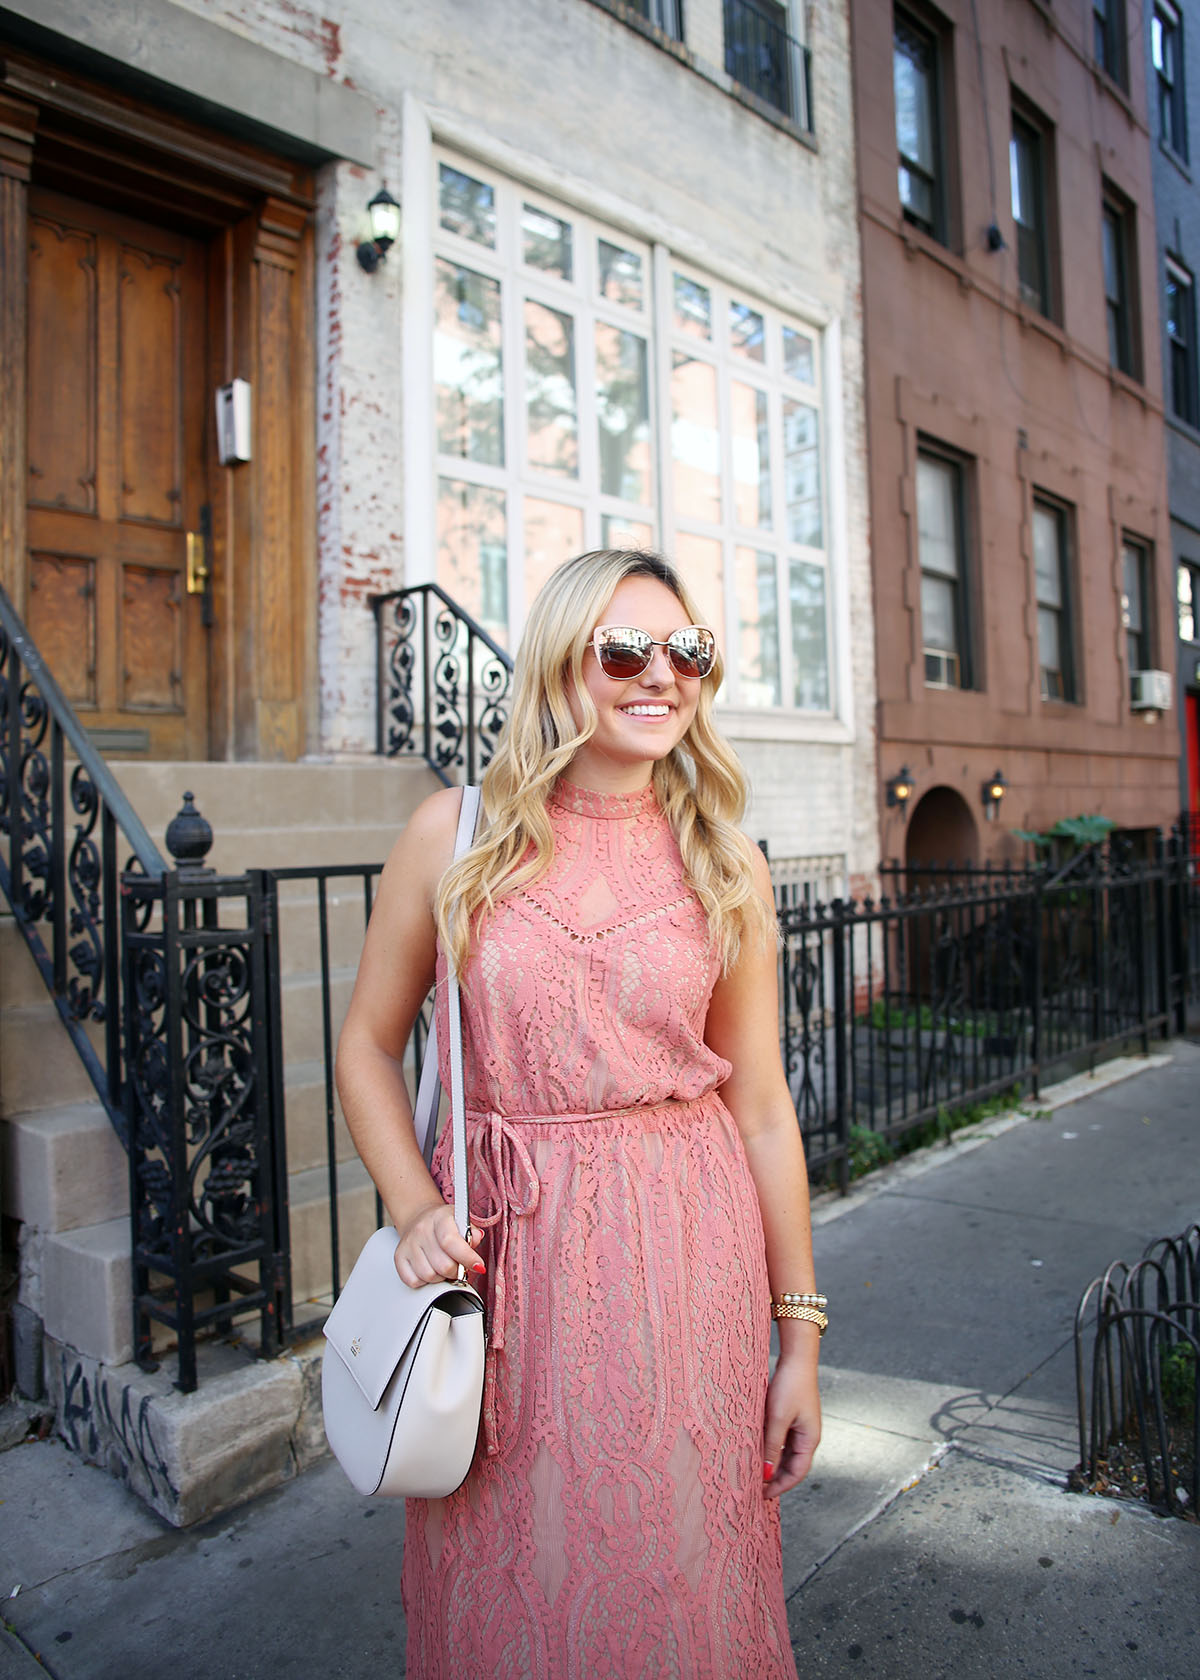 ff3a28782ba8 Fashion blogger Bows & Sequins wearing a pink lace midi dress during New  York Fashion Week